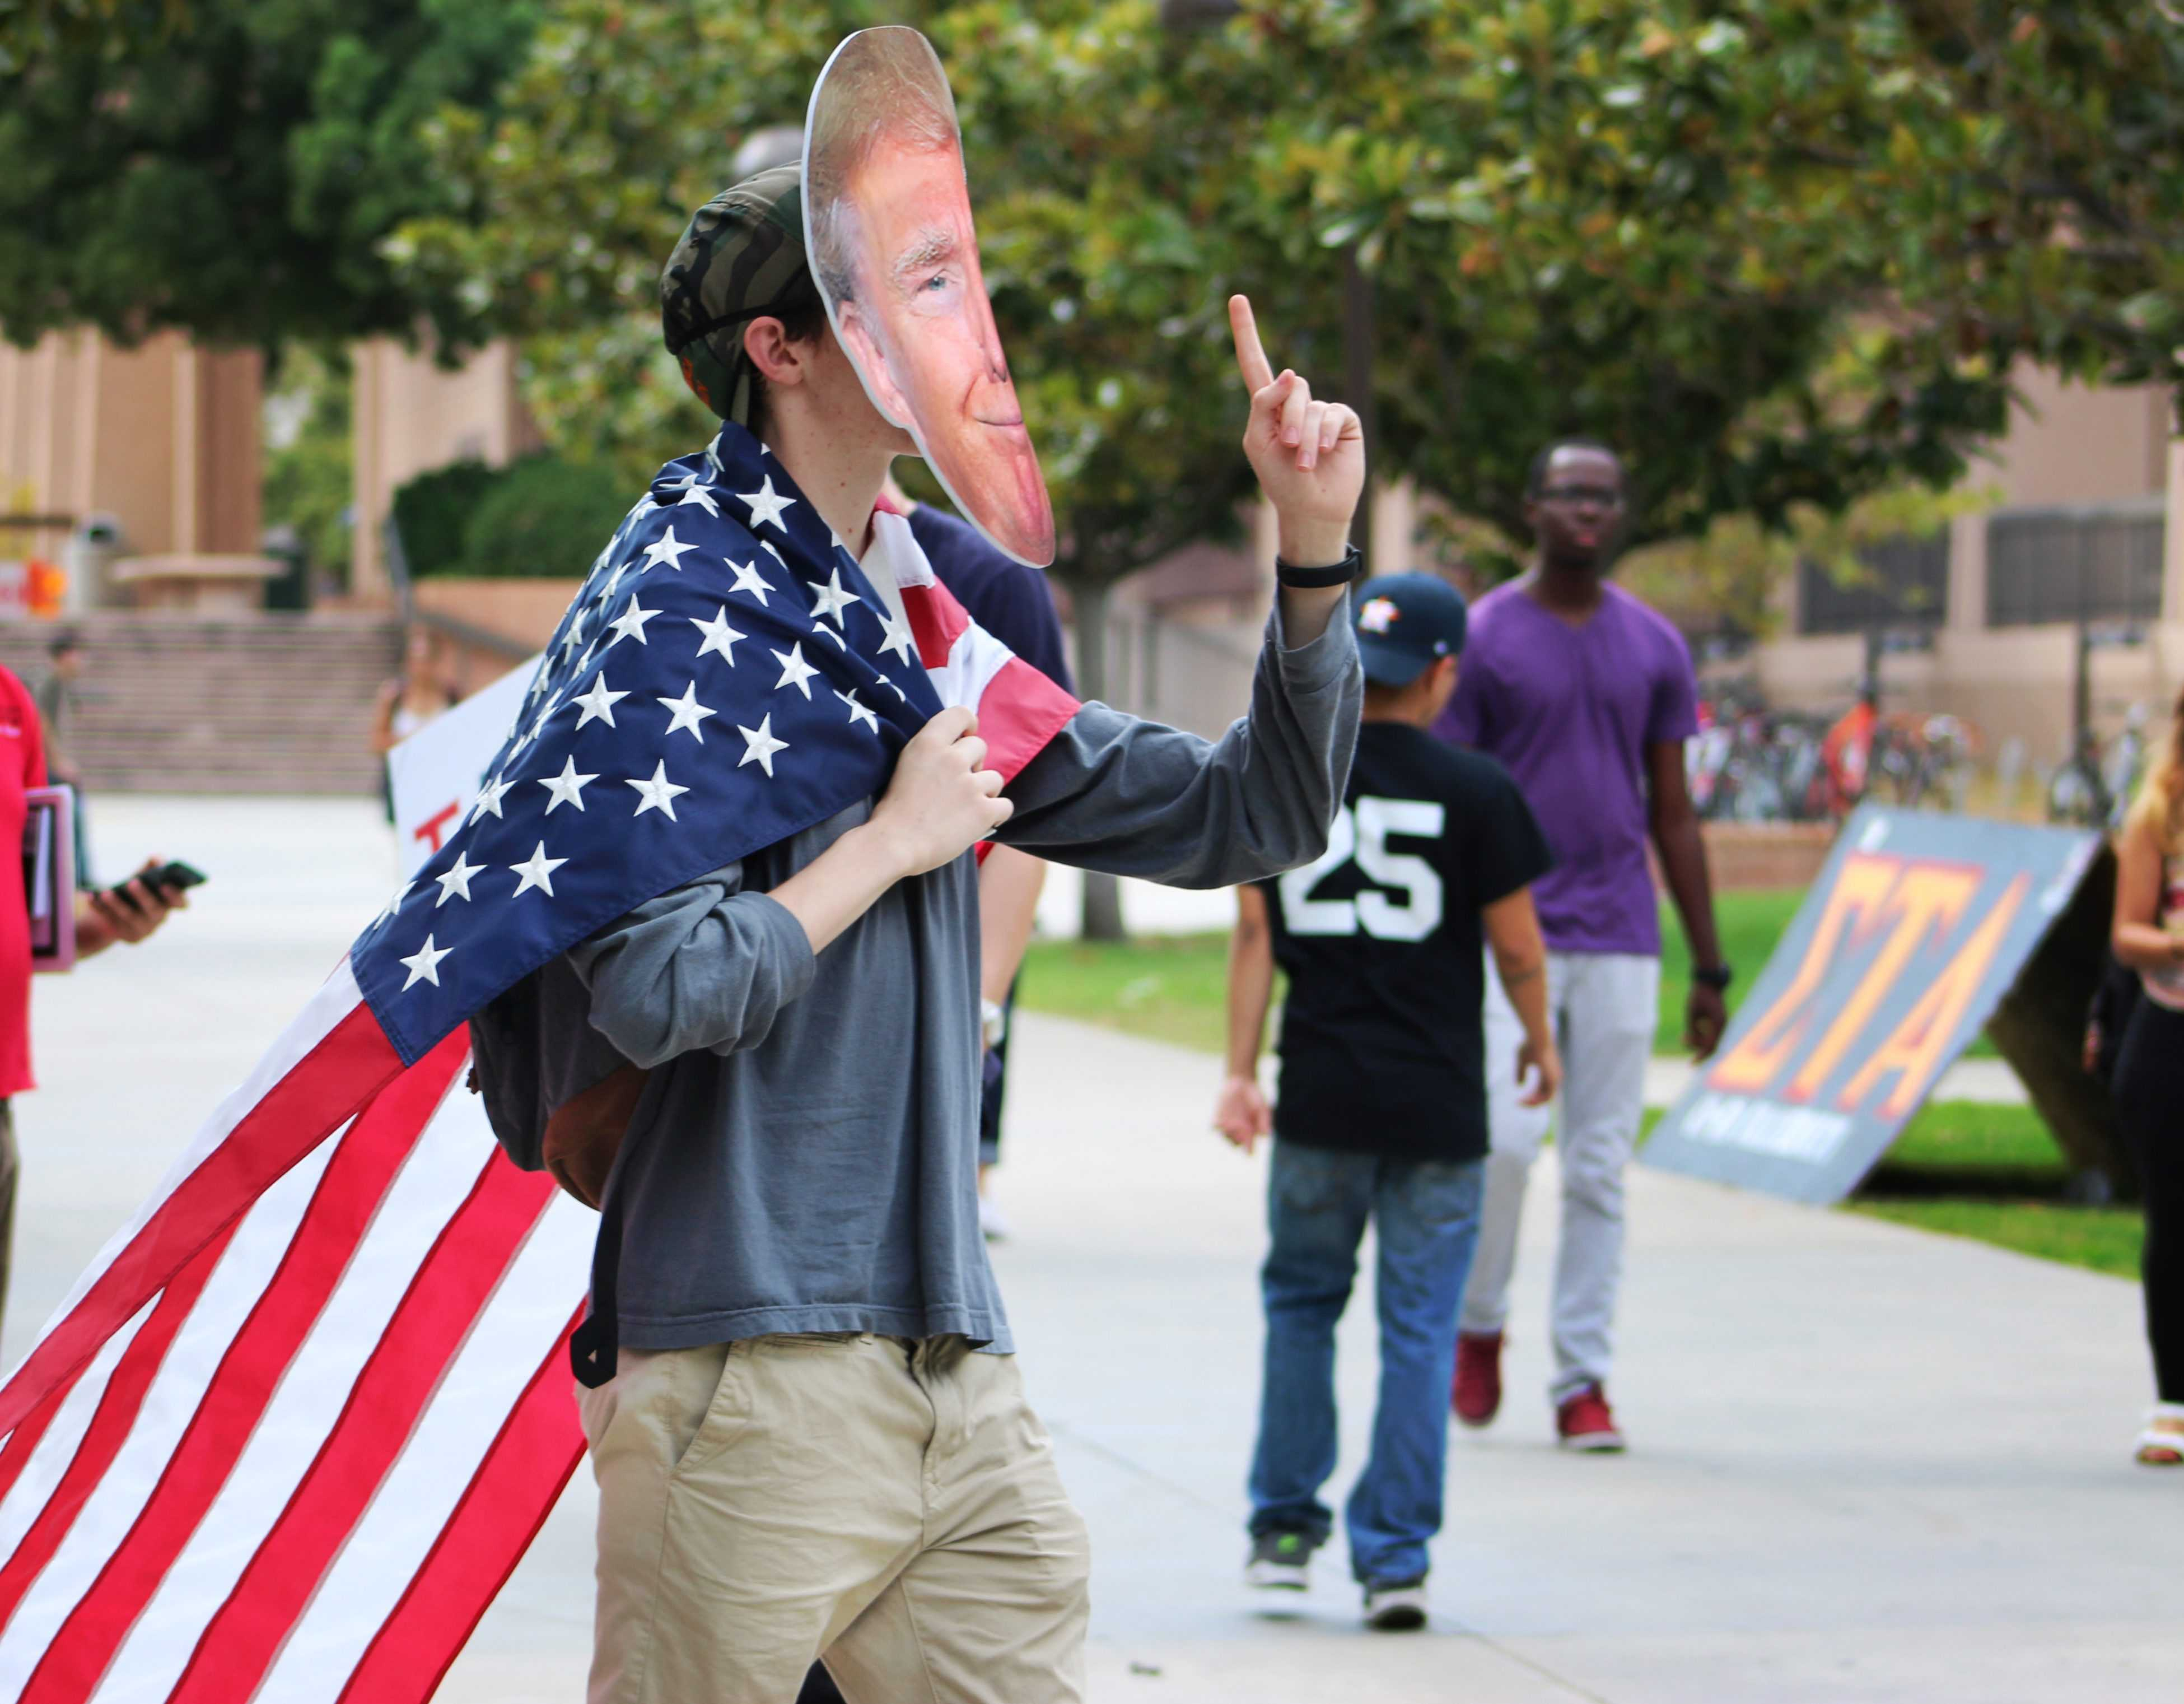 man wears donald trump mask and american flag